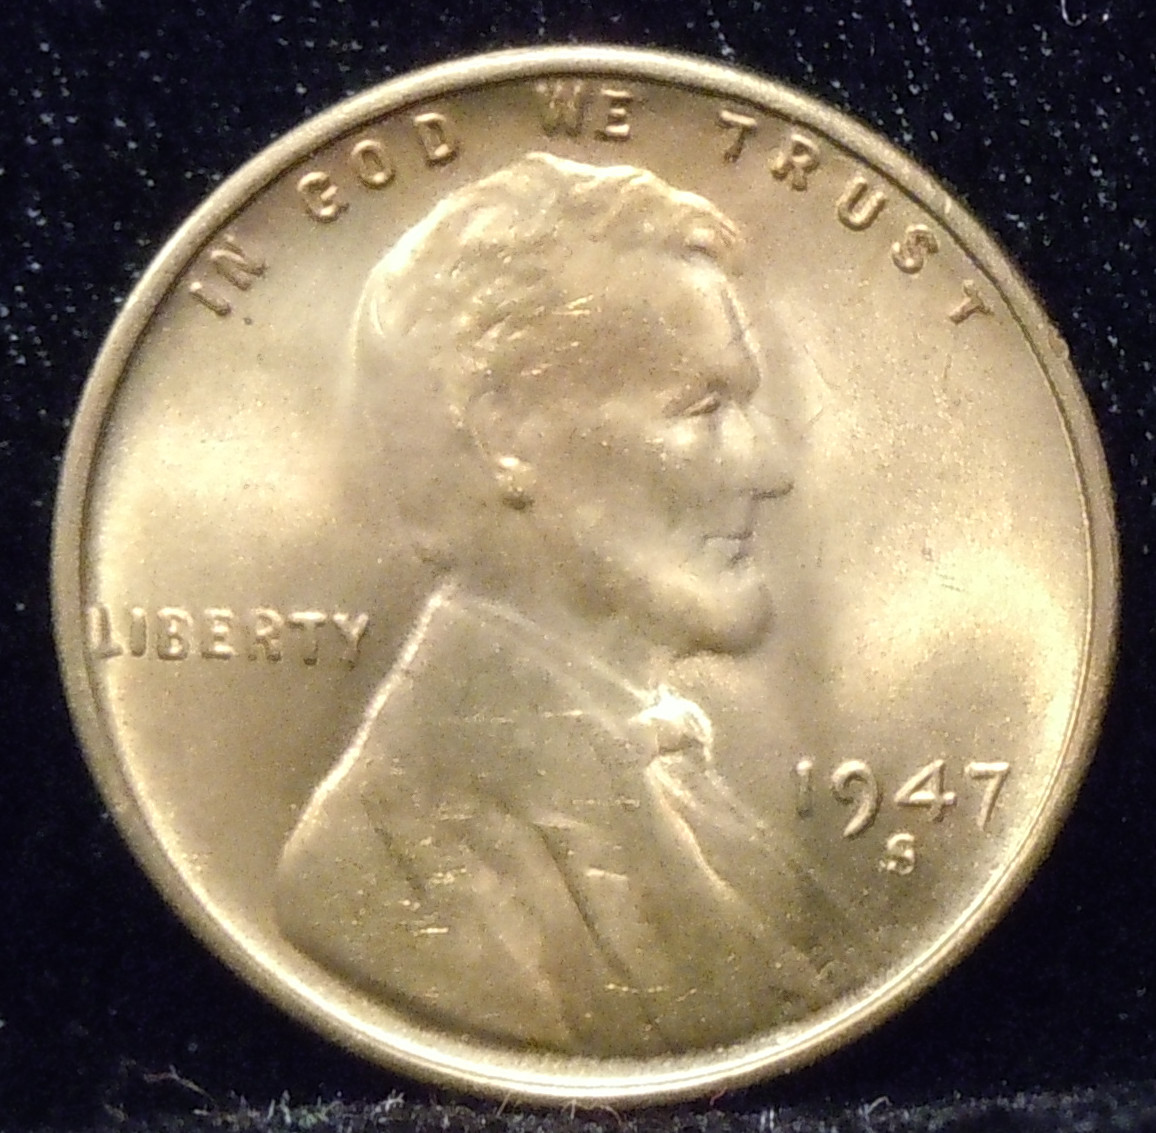 1947-S Lincoln Cent ( BU )